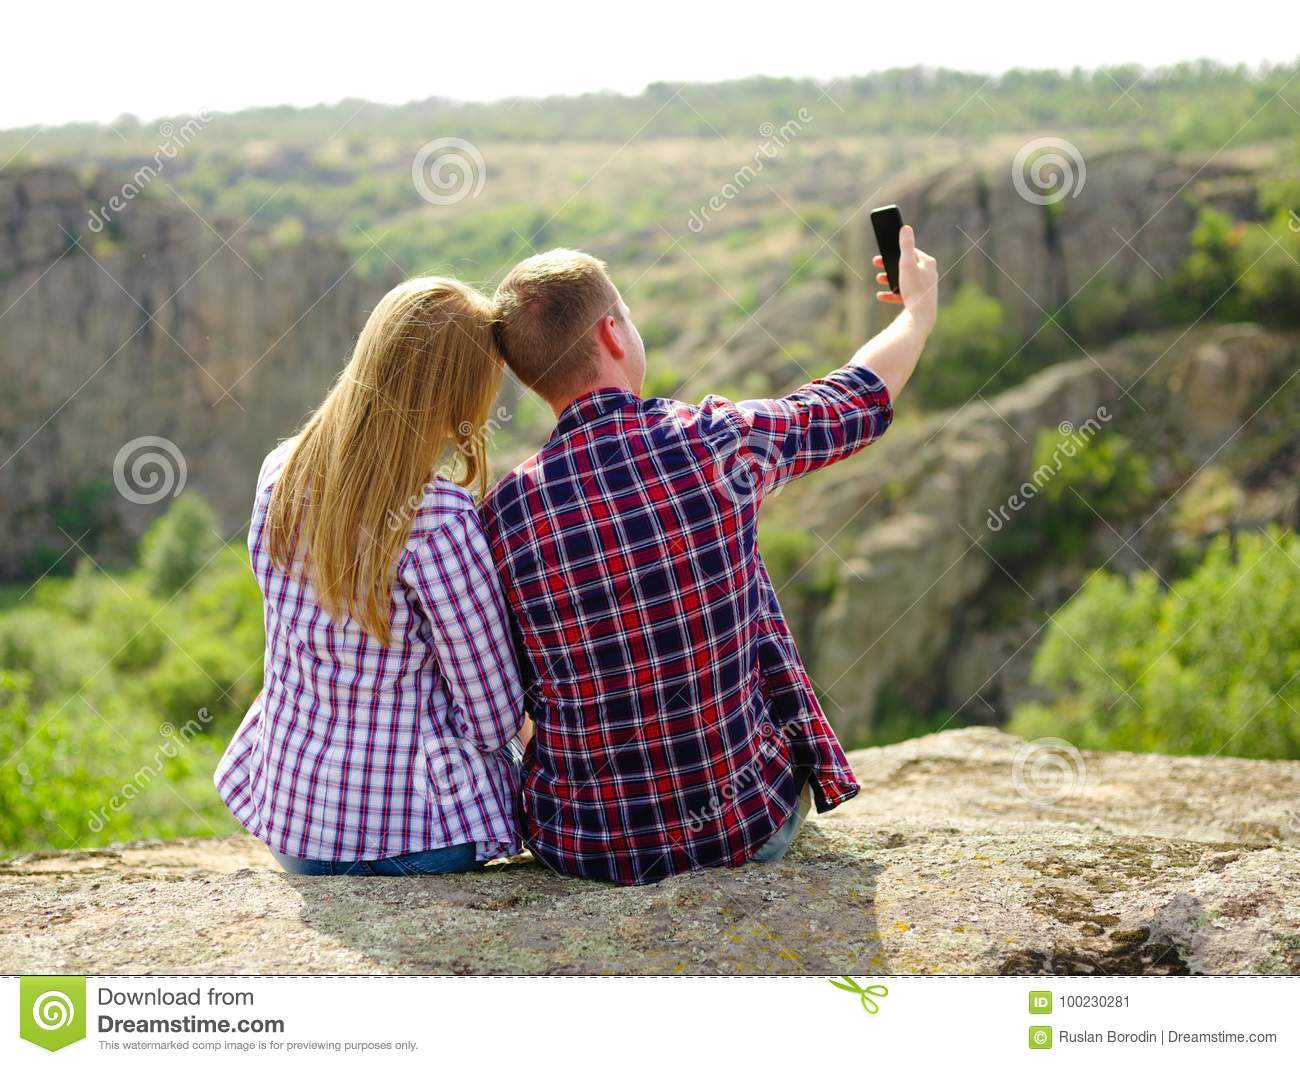 Active healthy and progressive couple relaxing on a camping trip in a national park and taking a selfie on a blurred natural background